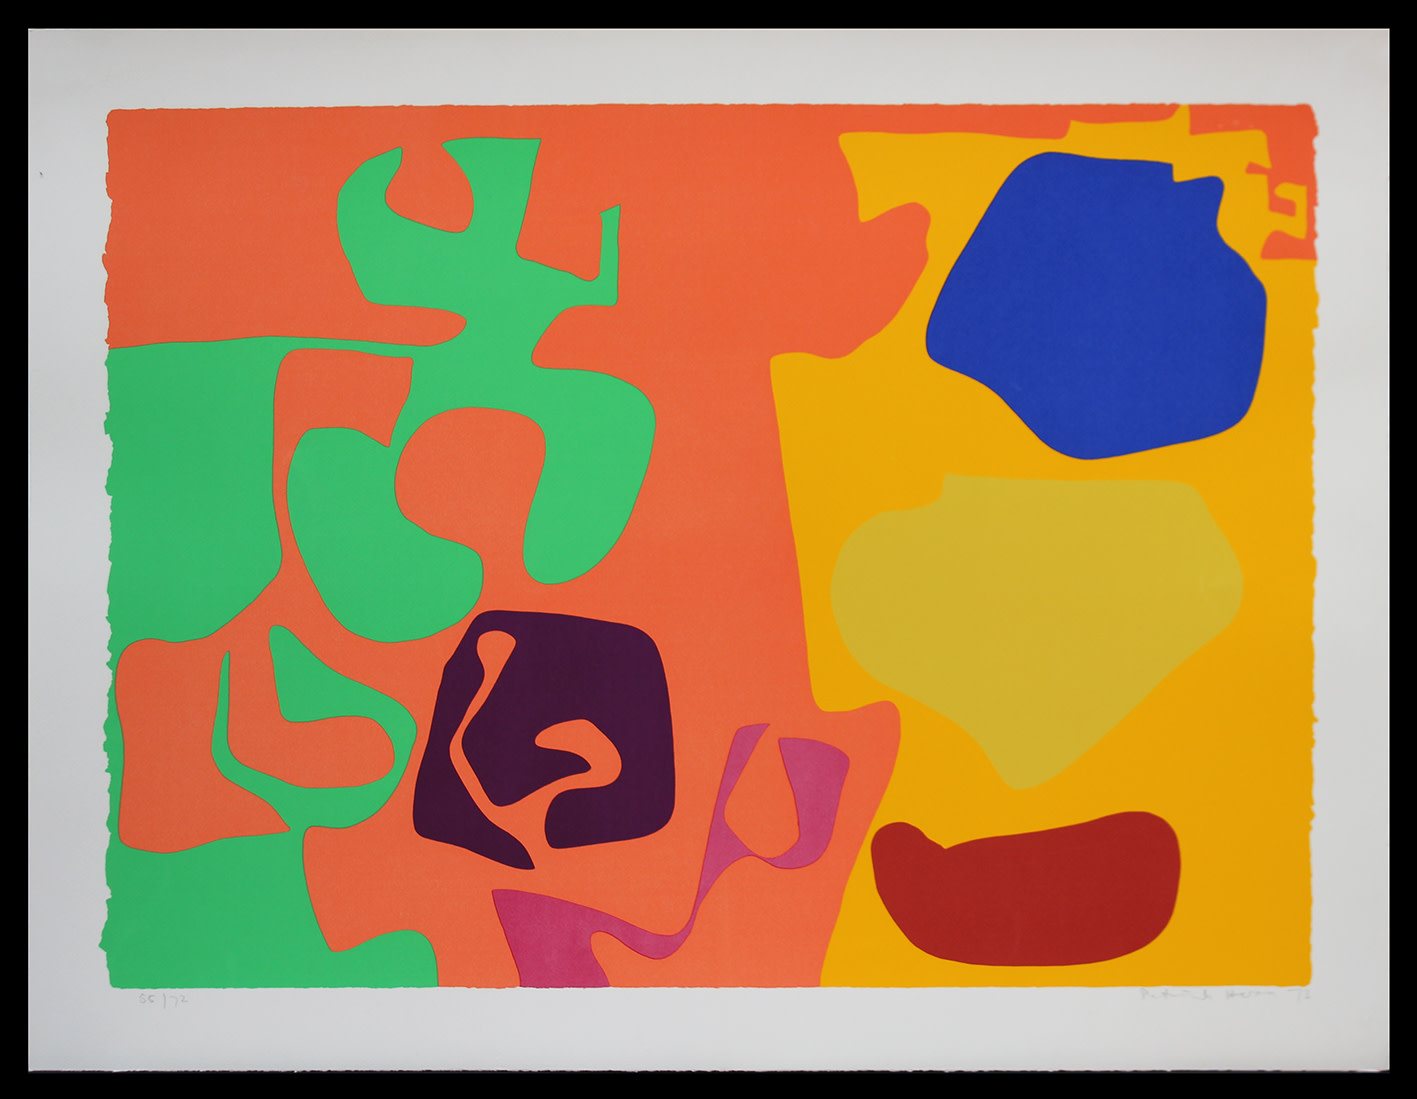 "<span class=""link fancybox-details-link""><a href=""/artists/93-patrick-heron-cbe/works/4478-patrick-heron-cbe-january-1973-10-1973/"">View Detail Page</a></span><div class=""artist""><strong>Patrick Heron CBE</strong></div> 1920 – 1999 <div class=""title""><em>January 1973 : 10</em>, 1973</div> <div class=""signed_and_dated"">signed, dated and numbered in pencil</div> <div class=""medium"">silkscreen print in colours on wove paper, with full margins</div> <div class=""dimensions"">Image size: 58.8 x 81.4 cm<br /> 23 1/8 x 32 1/8 in<br /> <br /> Sheet size: 69.5 x 91.5 cm<br /> 27 3/8 x 36 1/8 in<br /> <br /> </div> <div class=""edition_details"">Edition 55 of 72</div><div class=""copyright_line"">© The Estate of Patrick Heron</div>"